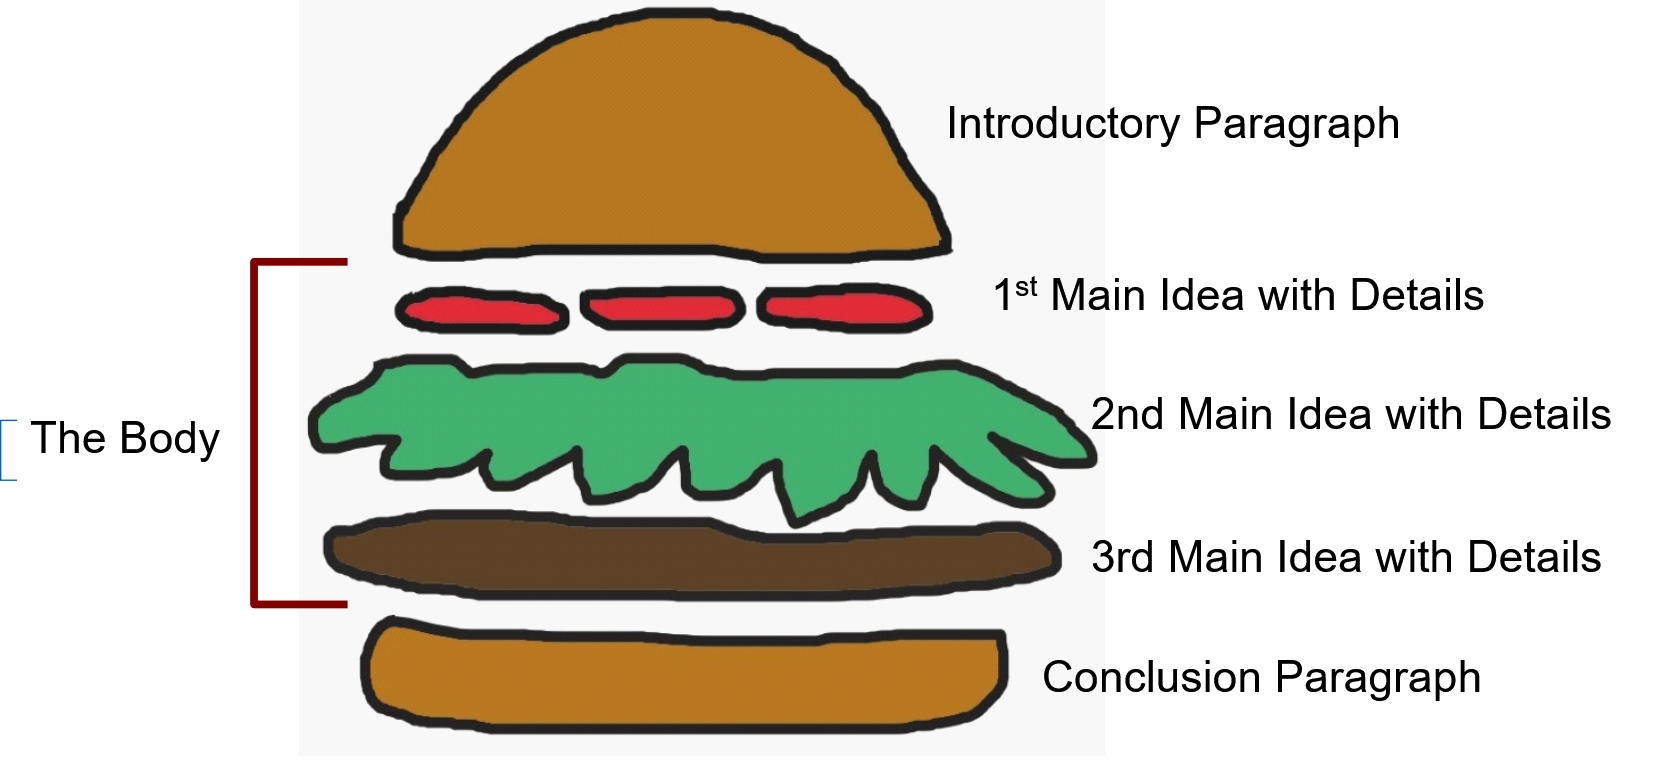 An image of the layers of a hamburger, used to illustrate the five parts of an effective essay